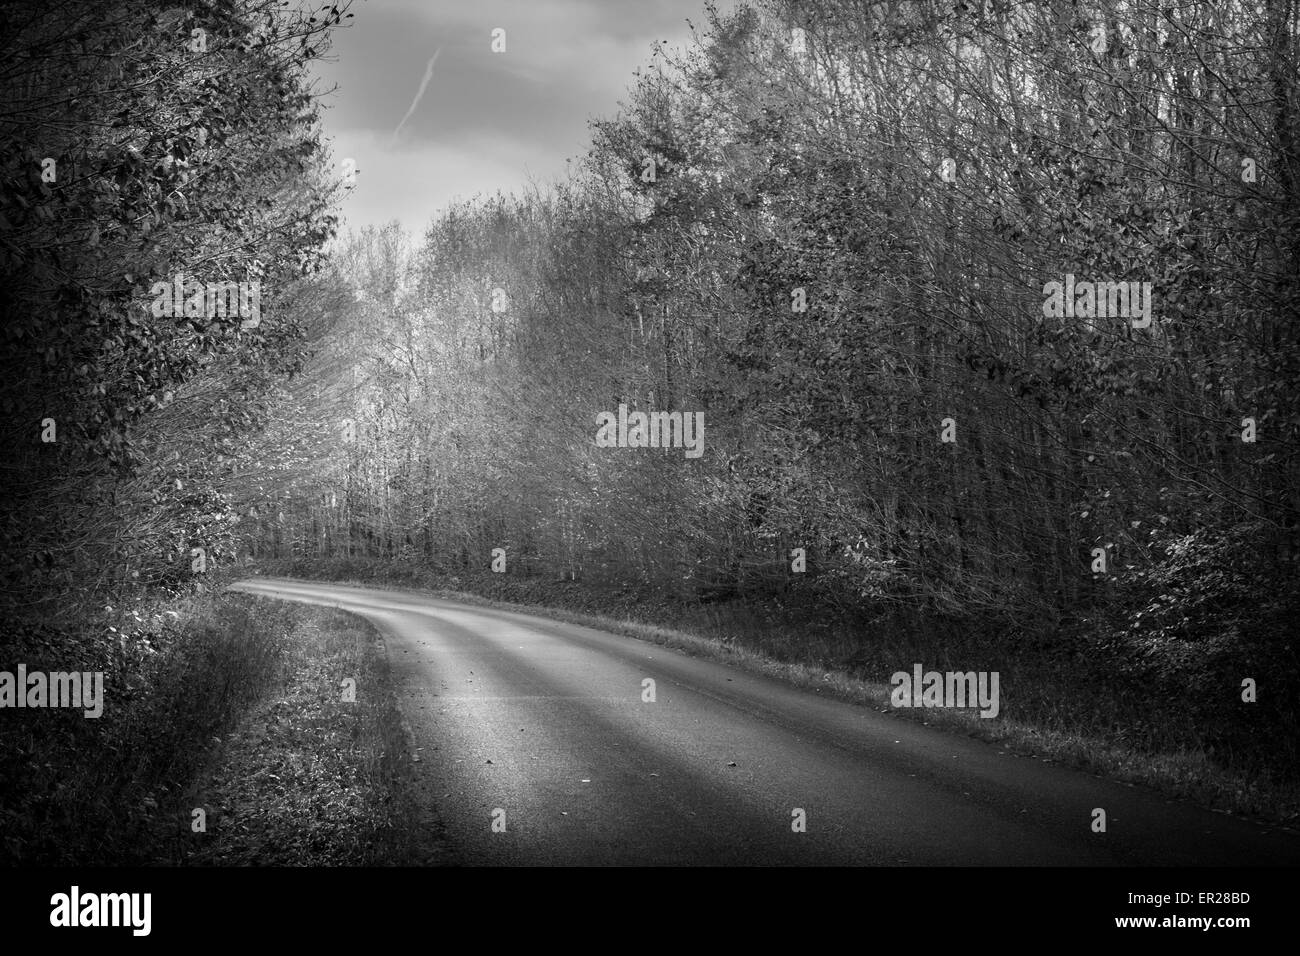 road wood trees Indre-et-Loire France black and white - Stock Image